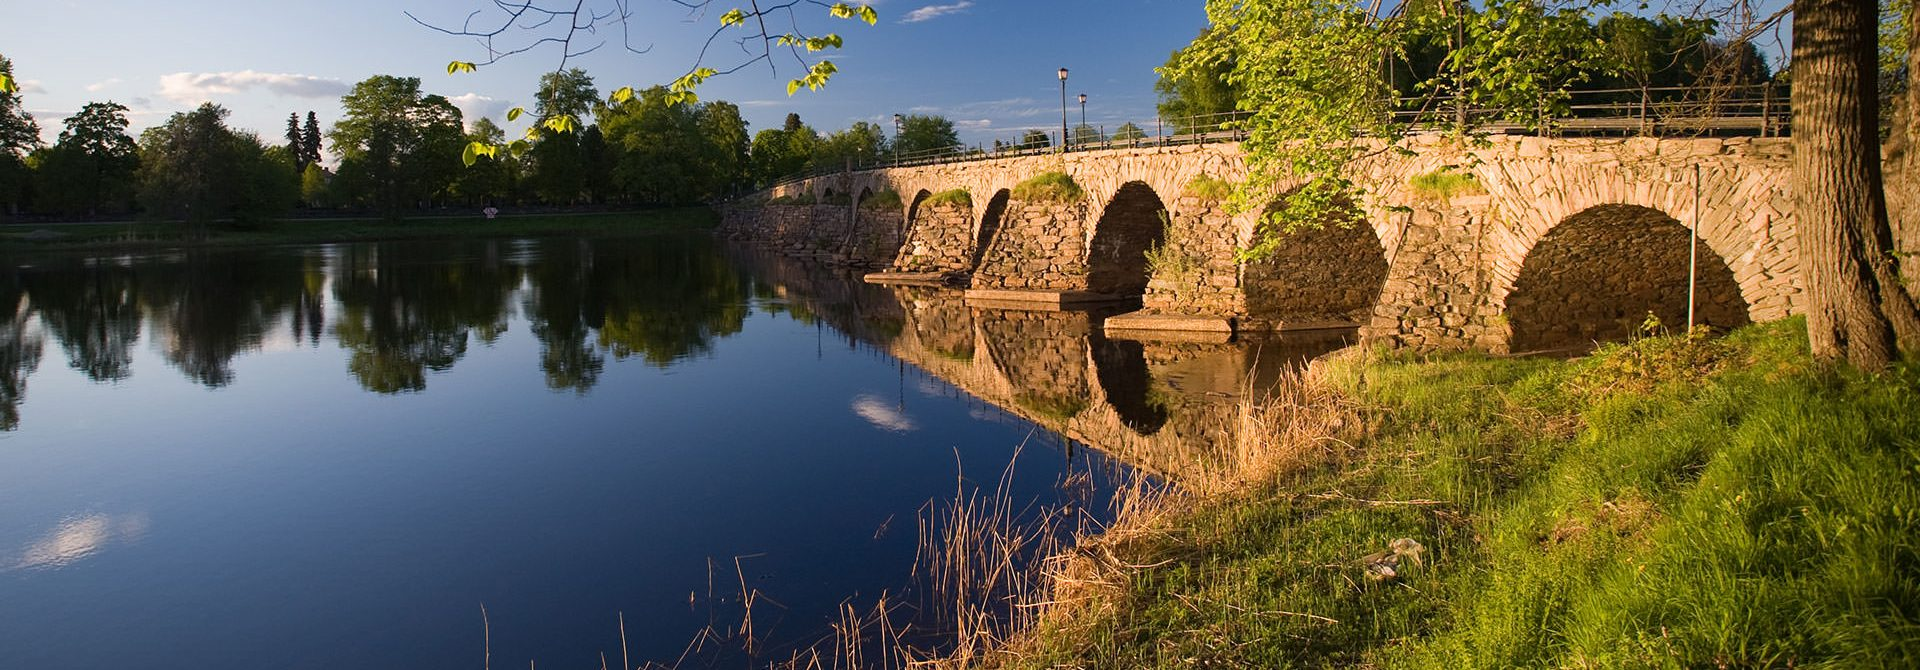 Stone bridge over river